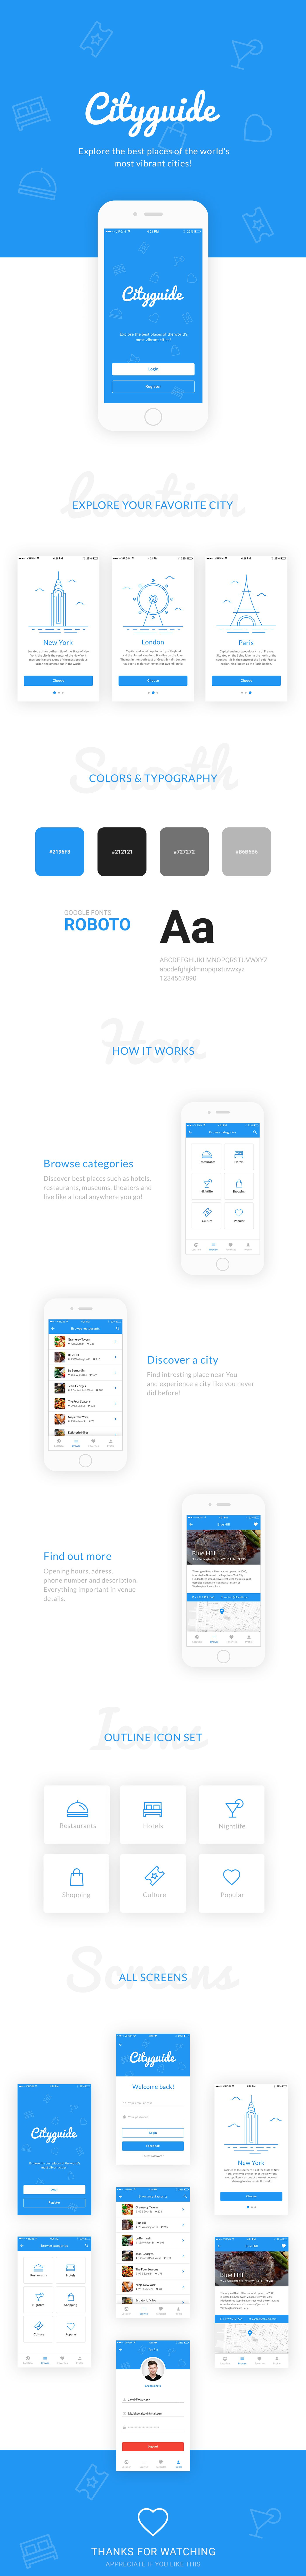 Cityguide Mobile App Template includes 7 welllayered